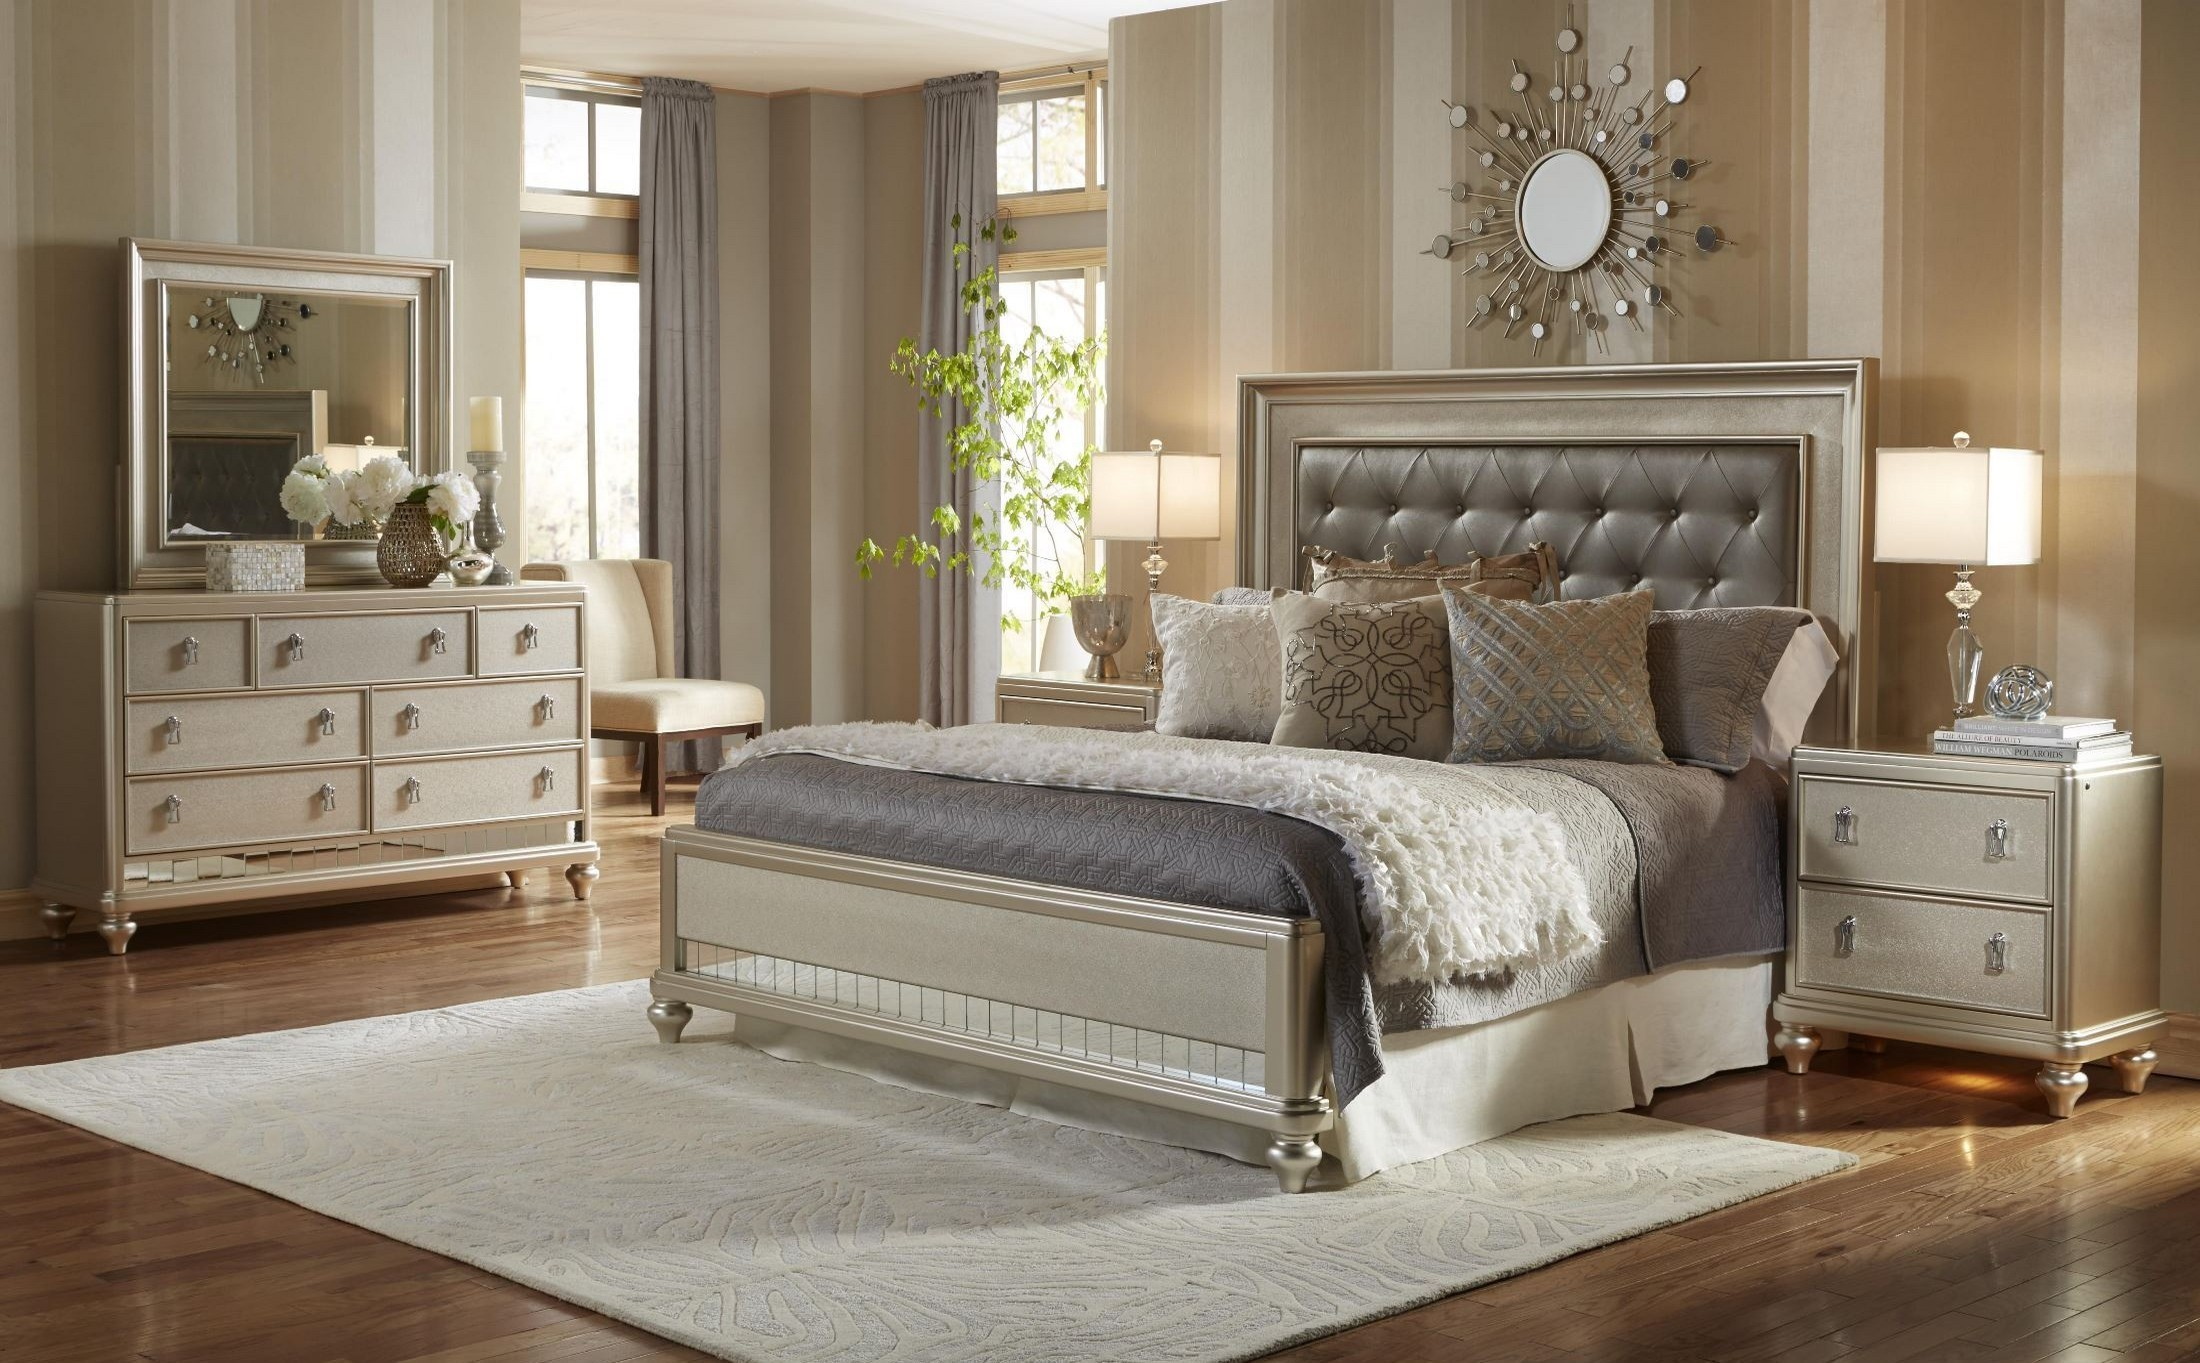 Diva panel bedroom set from samuel lawrence 8808 255 257 - Contemporary king bedroom furniture ...